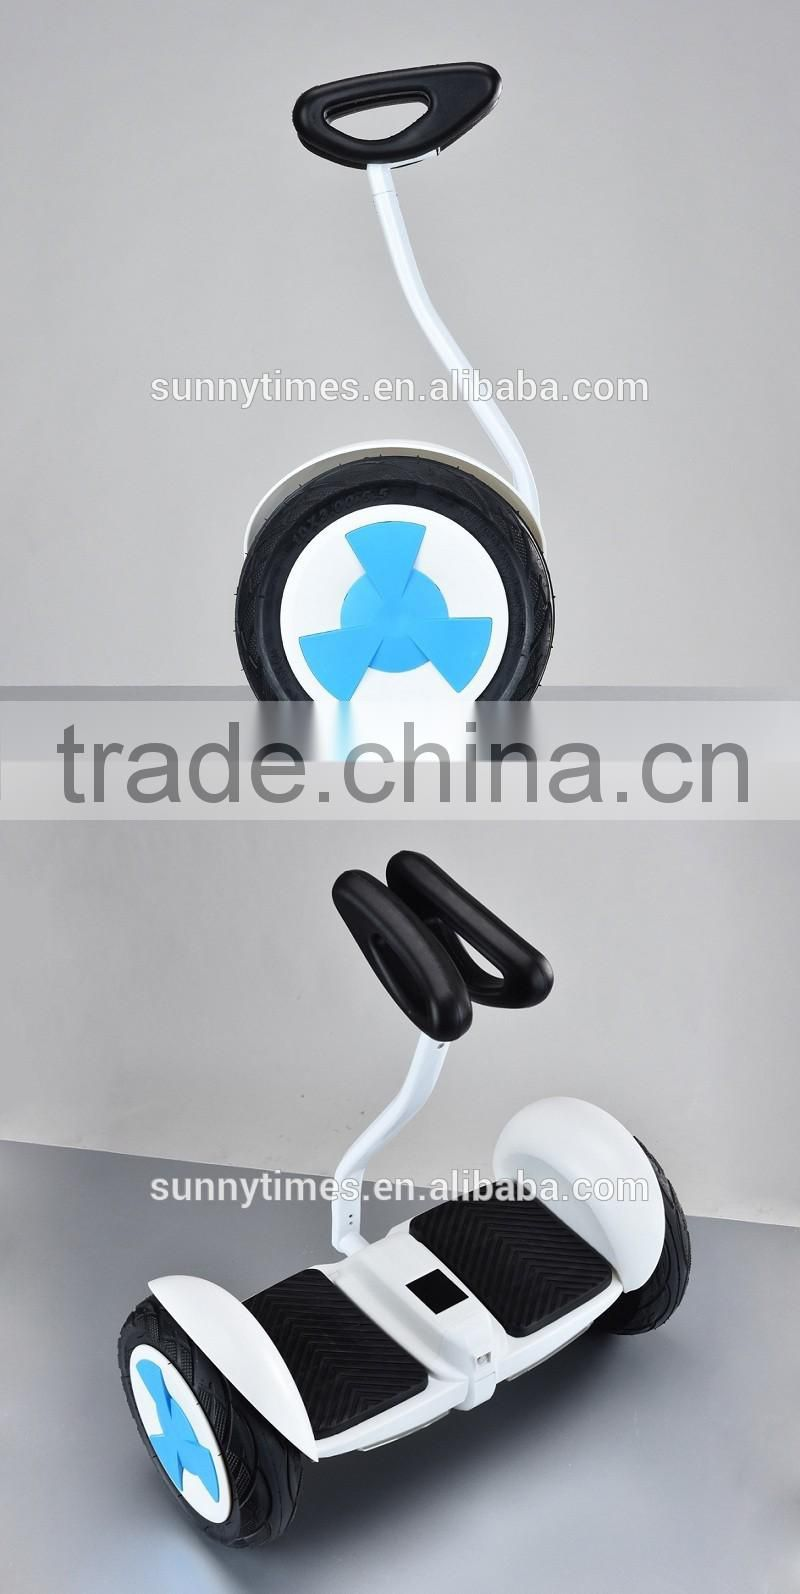 Trade Assurance Payment, Smart 10 Inch 2 Wheel Self Balancing Electric Scooter With LegControl